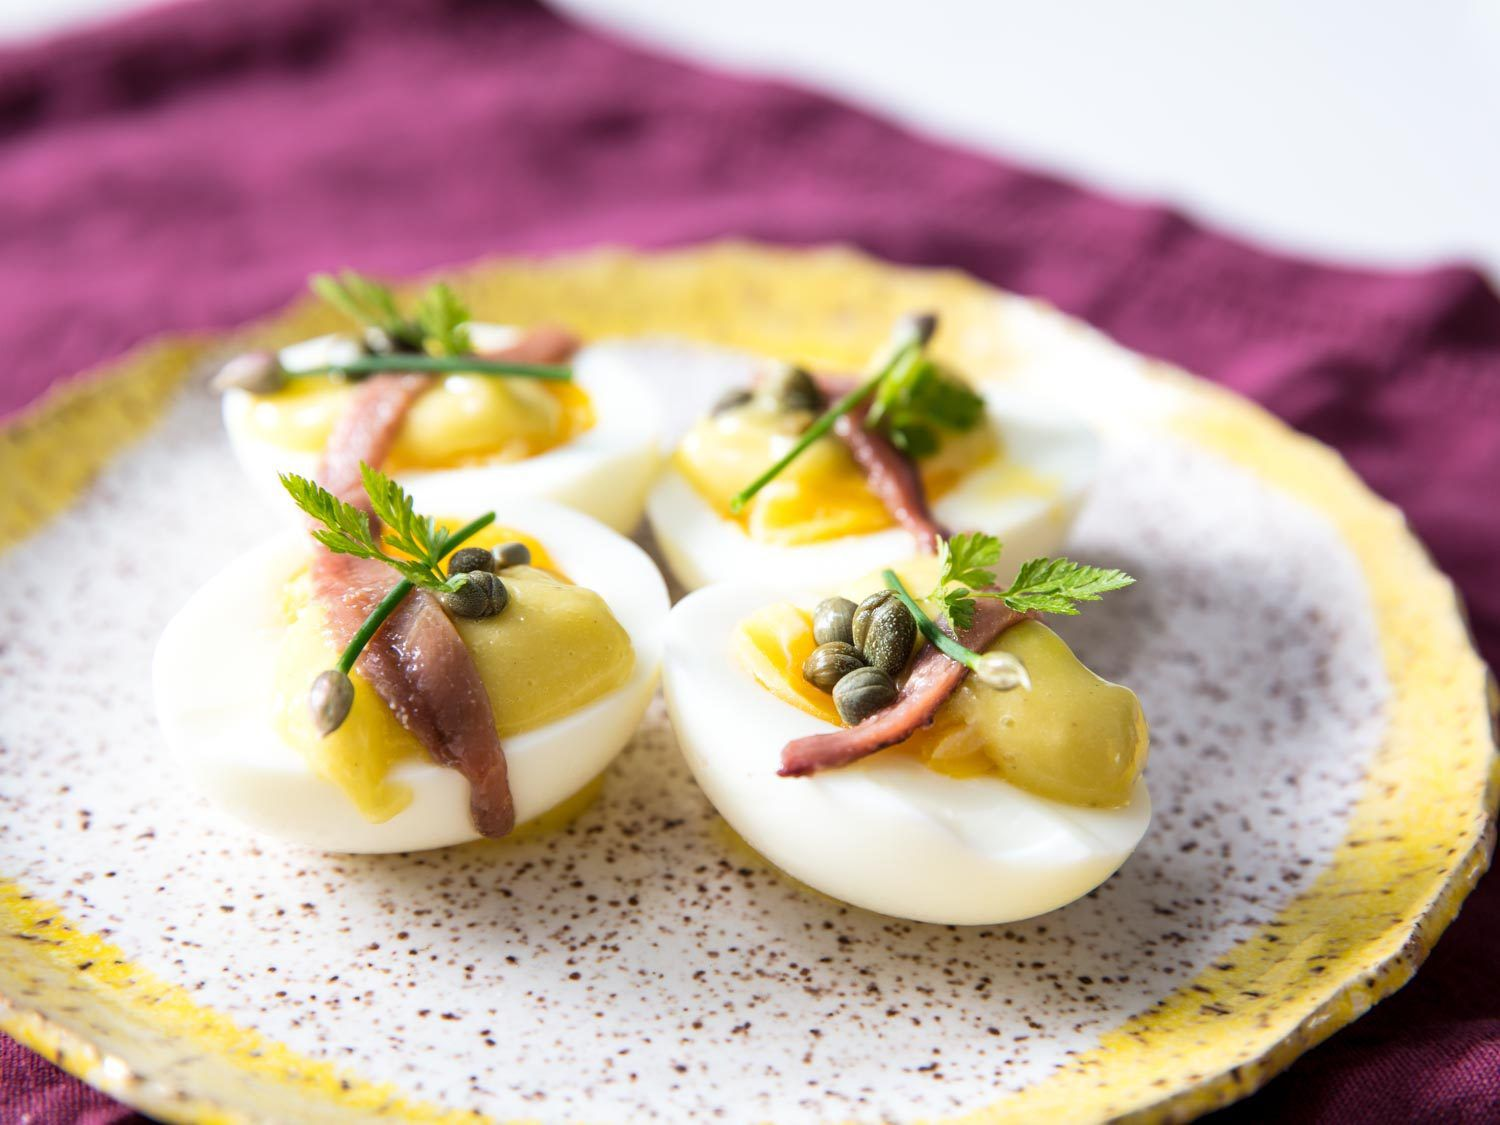 Close-up of four deconstructed deviled egg halves on a plate, topped with anchovy fillets, capers, and homemade mayo